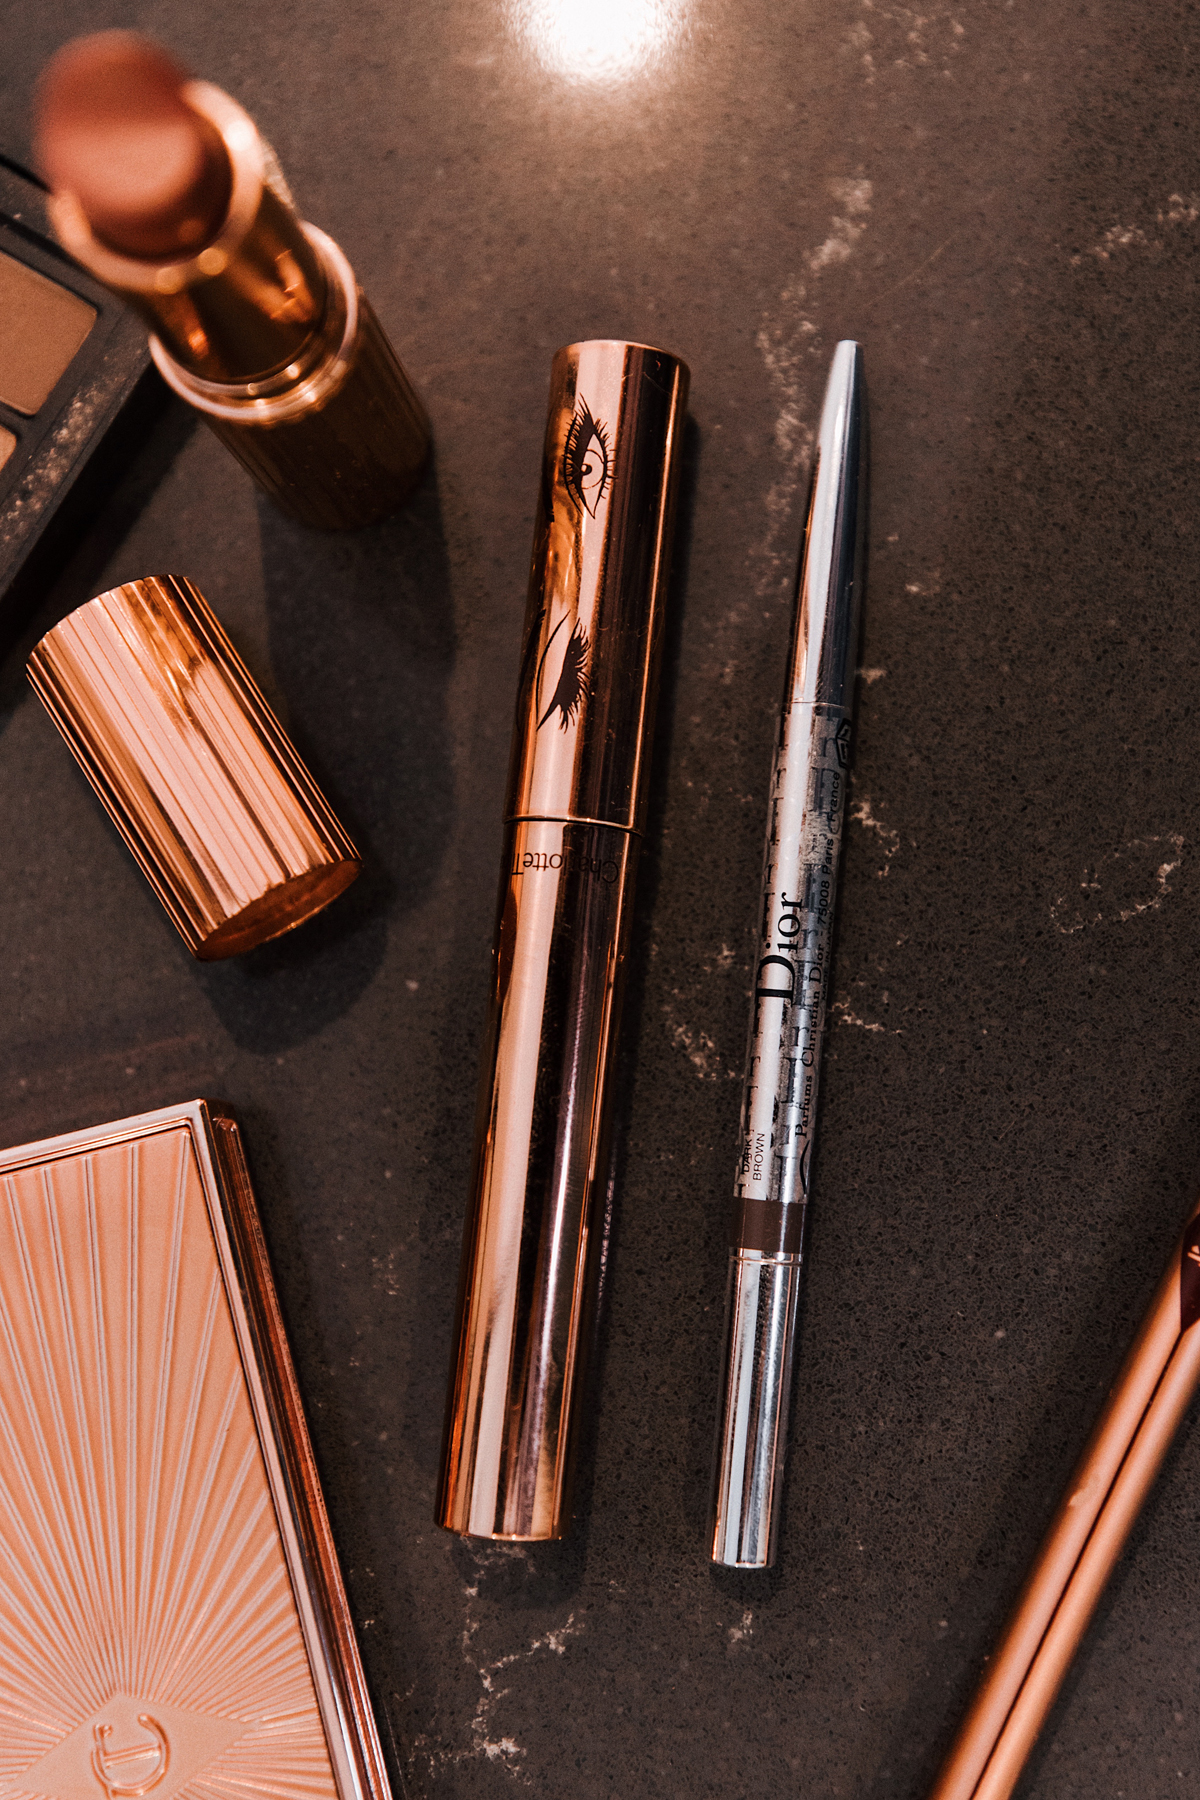 fashion jackson sephora holiday beauty event 2019 charlotte tilbury ledgendary brows diorshow brow pencil